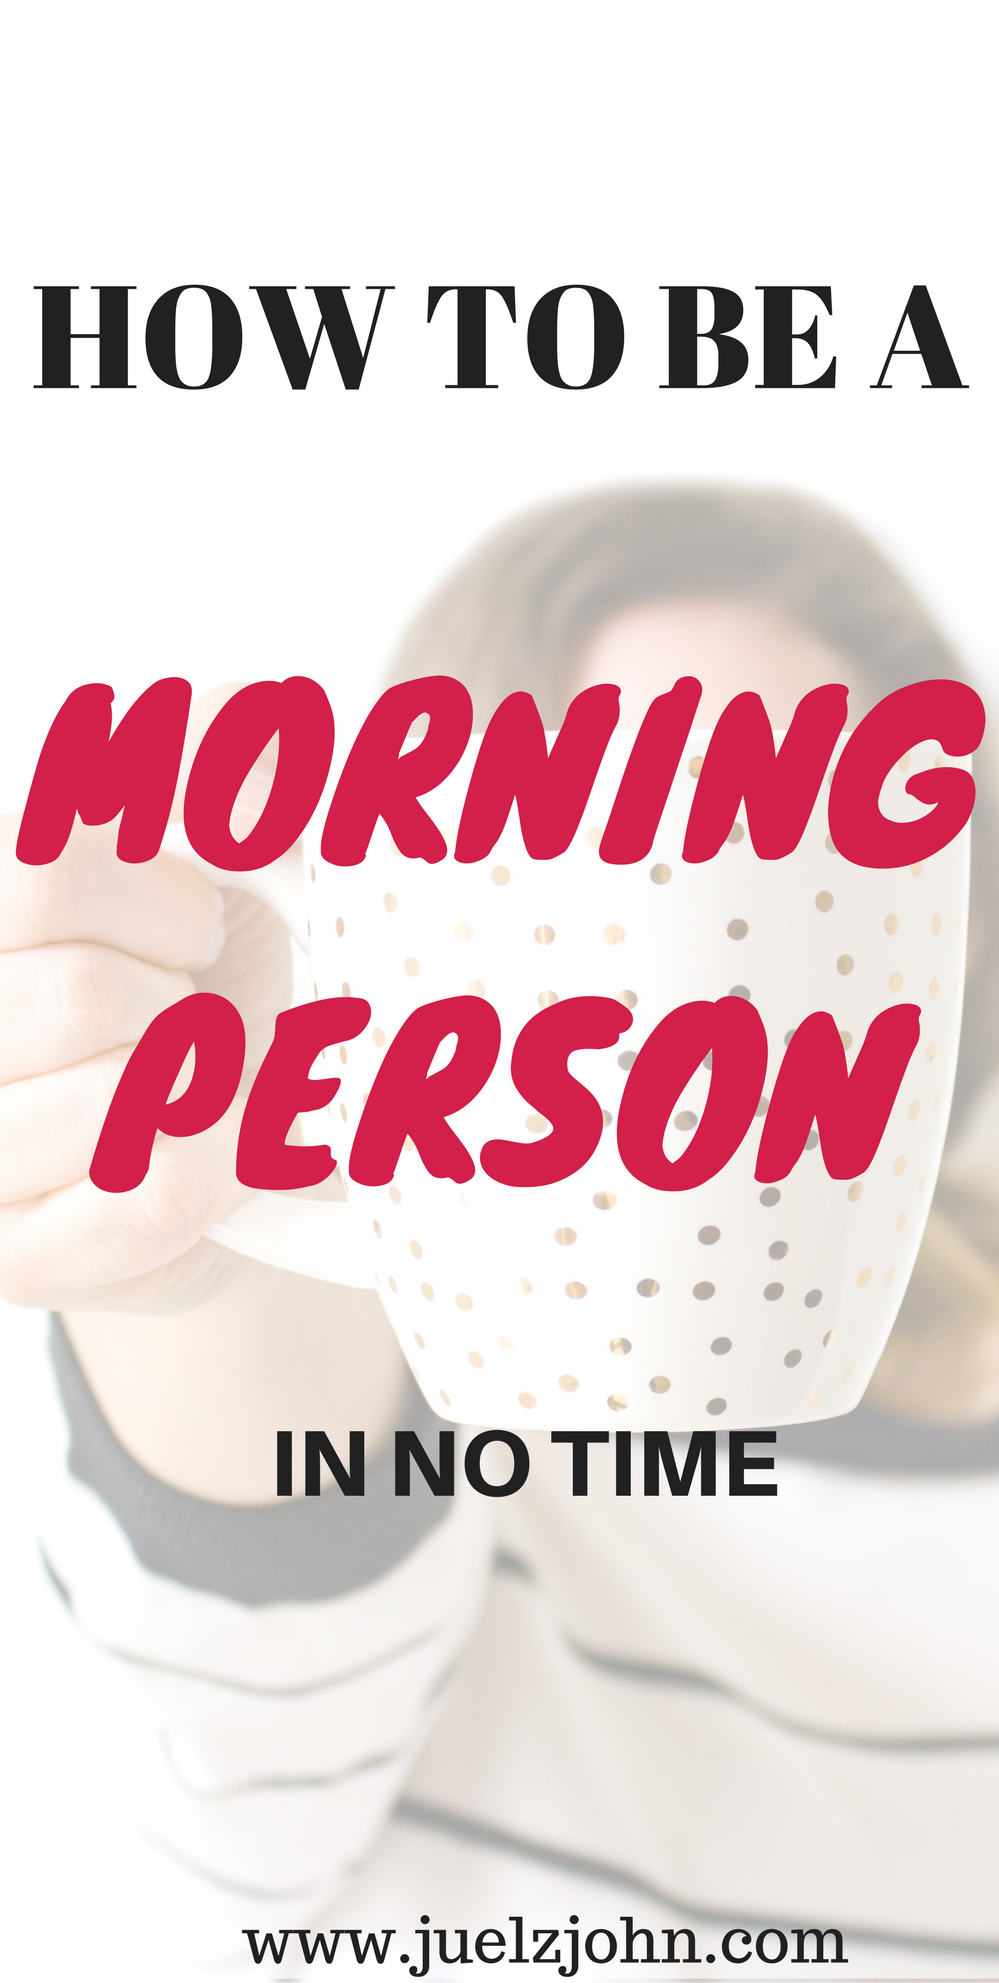 6 tips to become a morning person in no time www.juelzjohn.com